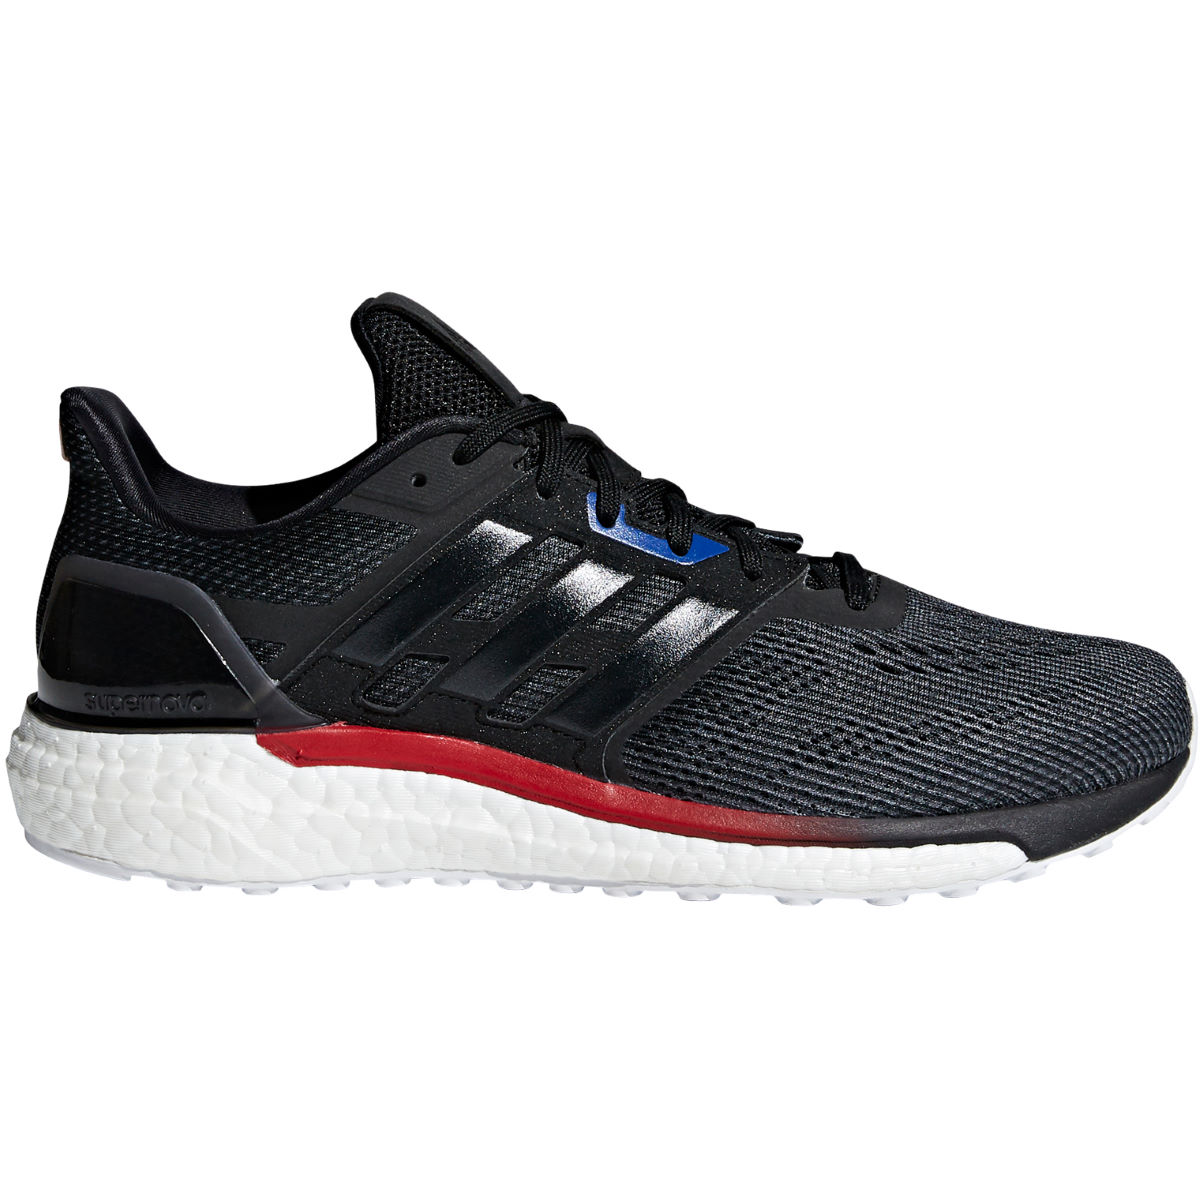 adidas Supernova AKTIV Shoes - Zapatillas de running